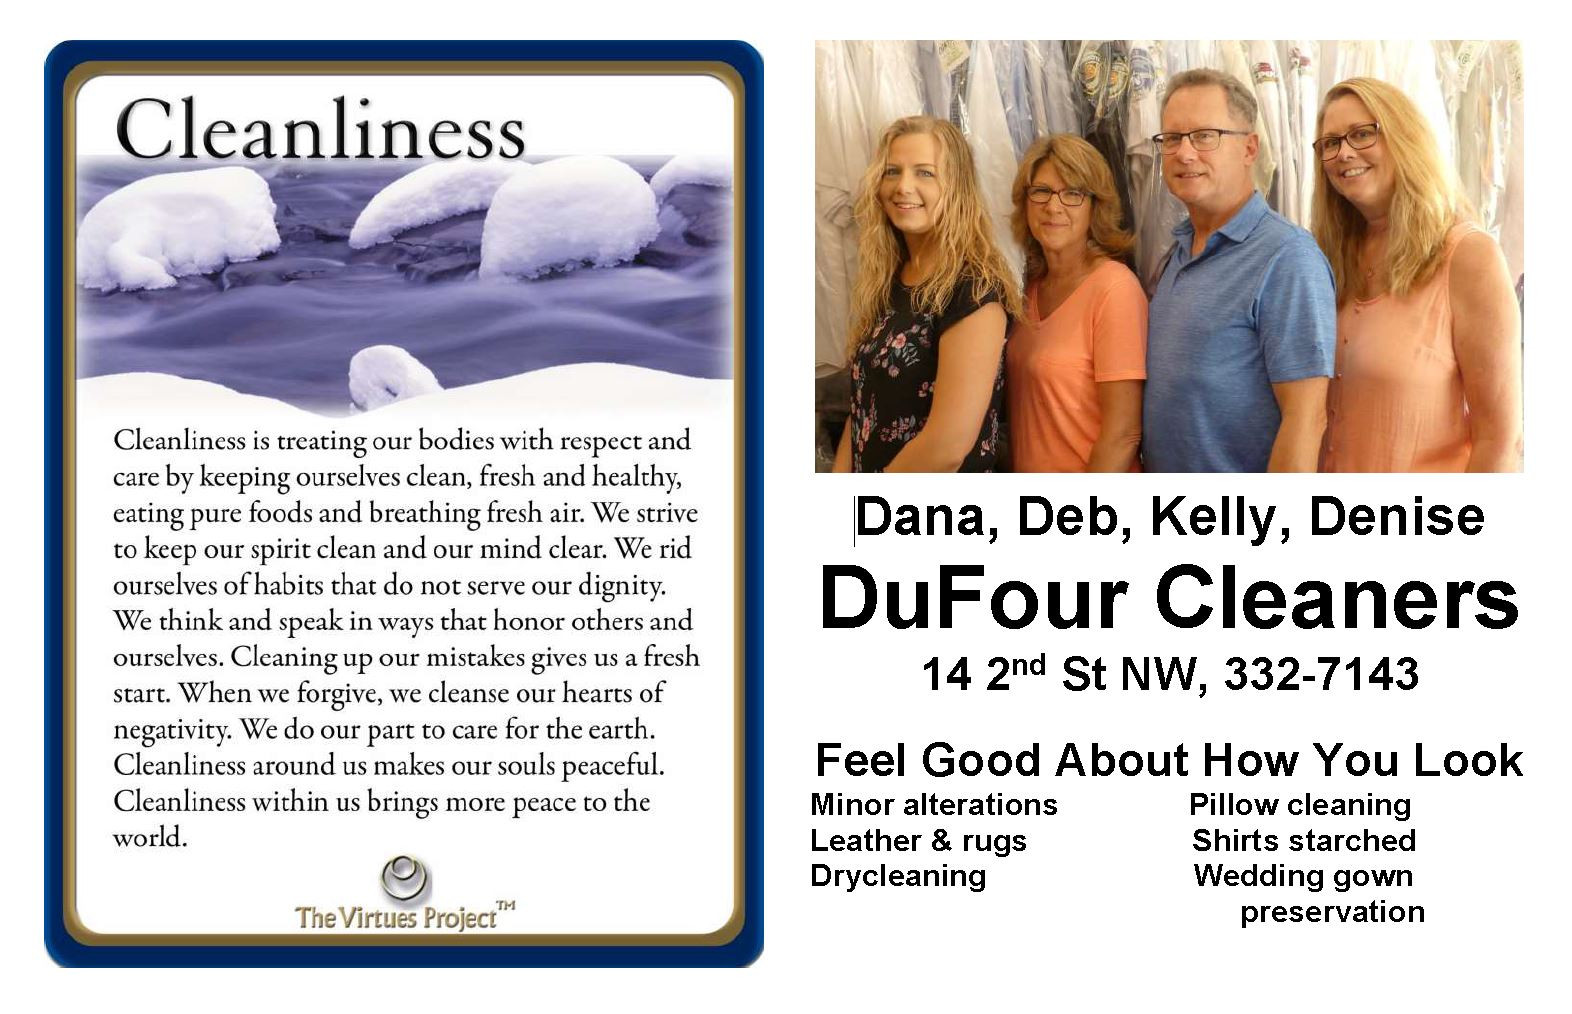 Dufour Cleaners Cleanliness.JPG